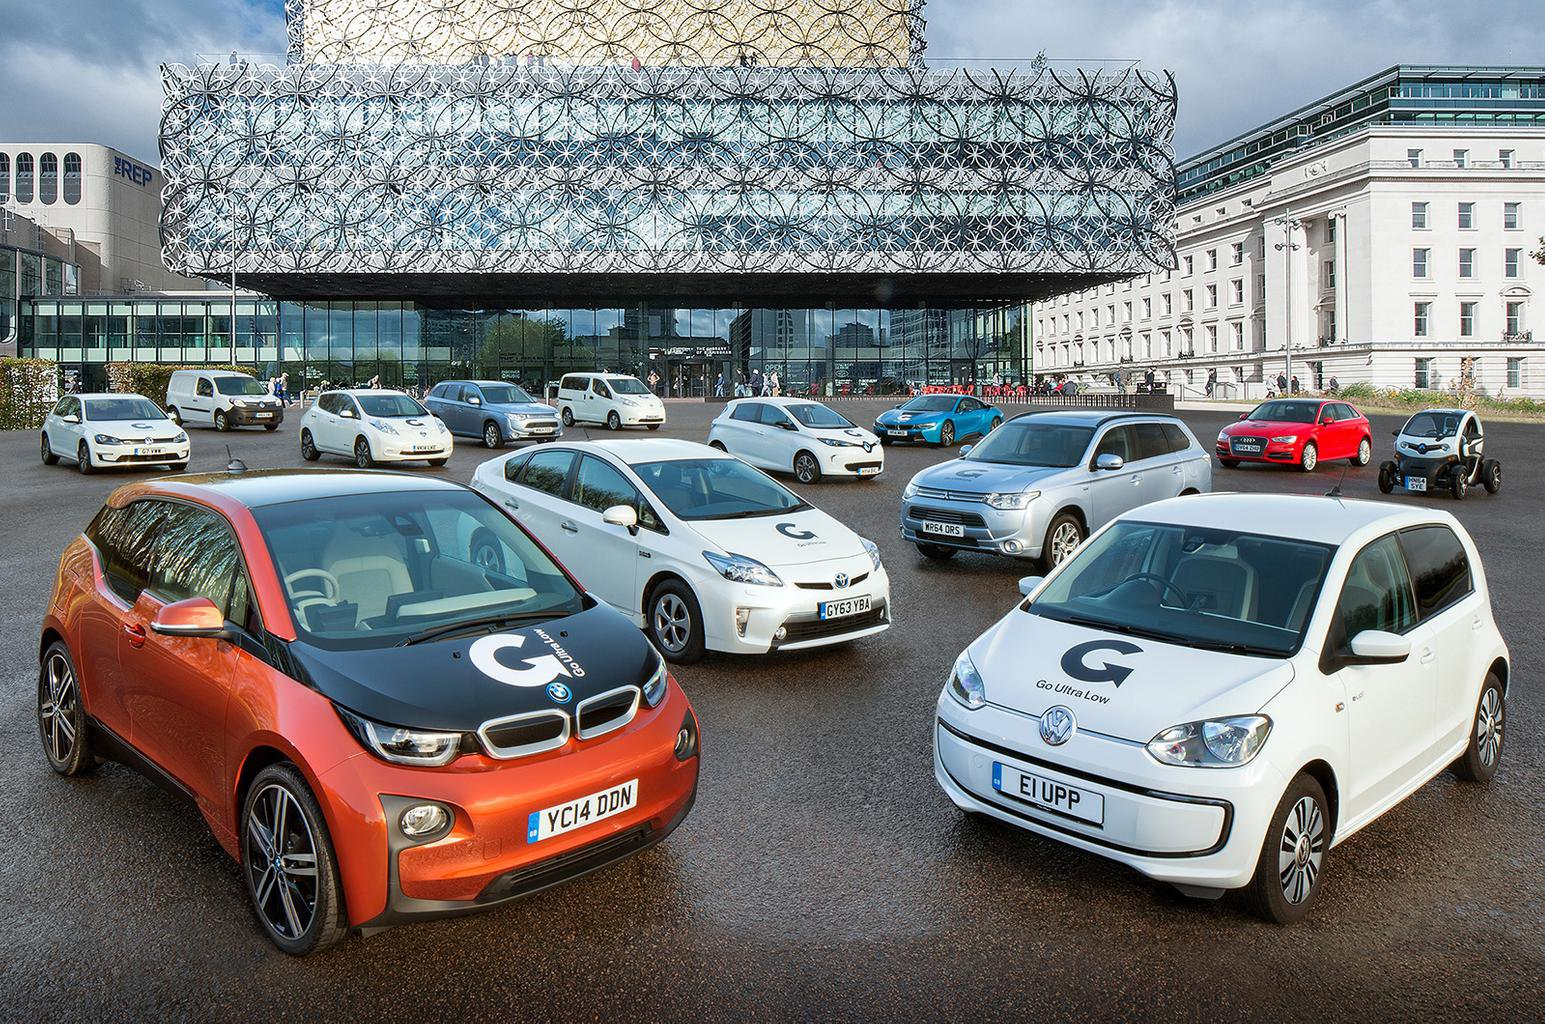 UK cities receive 40m funding to support electric vehicles